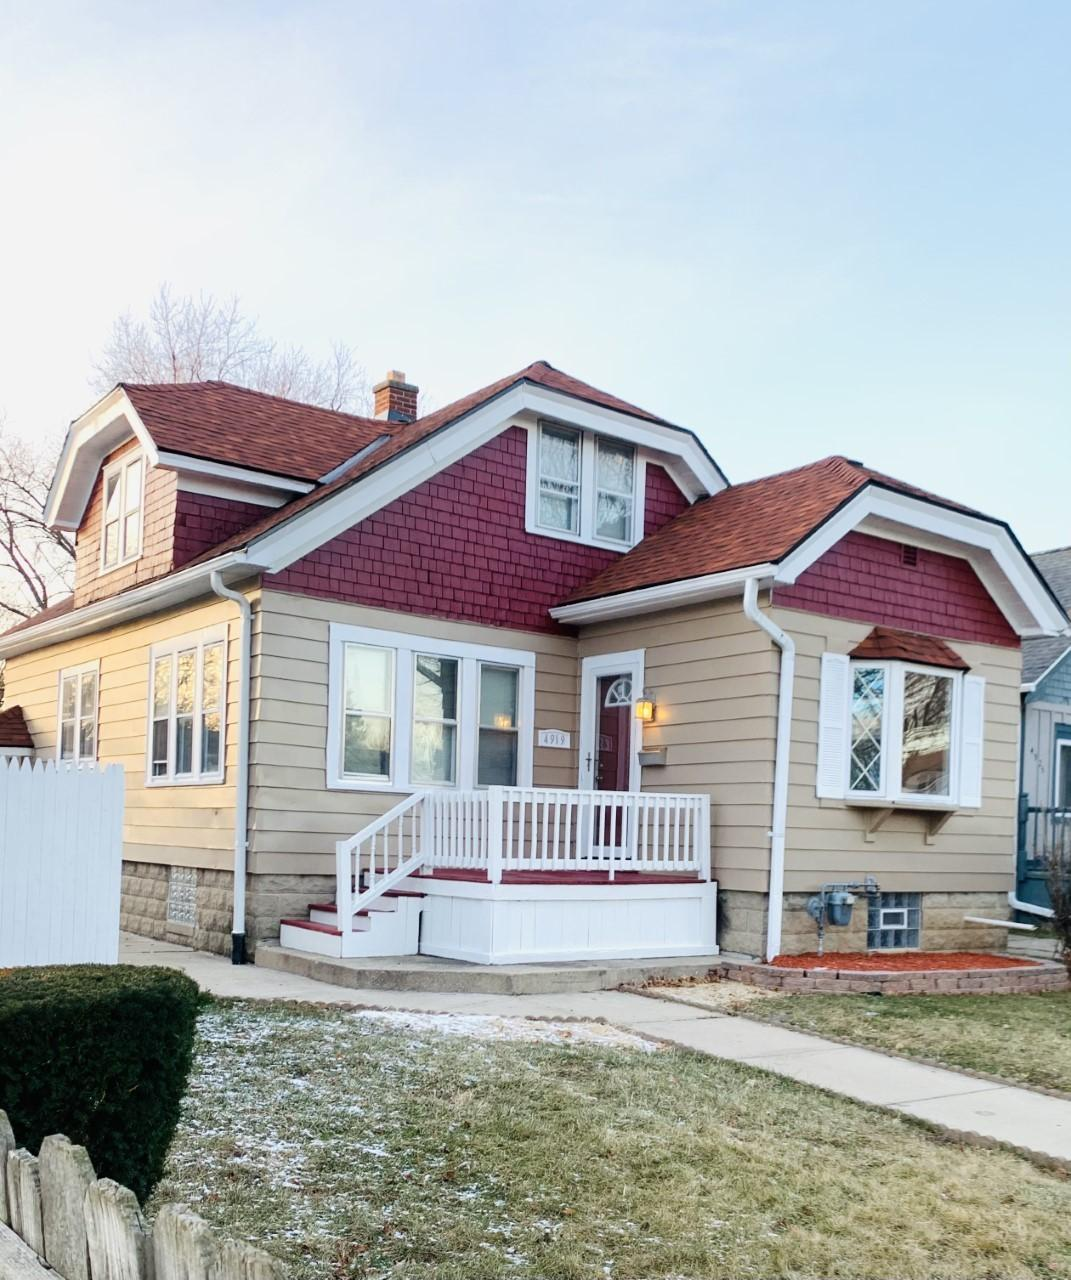 4919 52nd St, Milwaukee, Wisconsin 53218, 3 Bedrooms Bedrooms, 5 Rooms Rooms,2 BathroomsBathrooms,Single-family,For Sale,52nd St,1721726